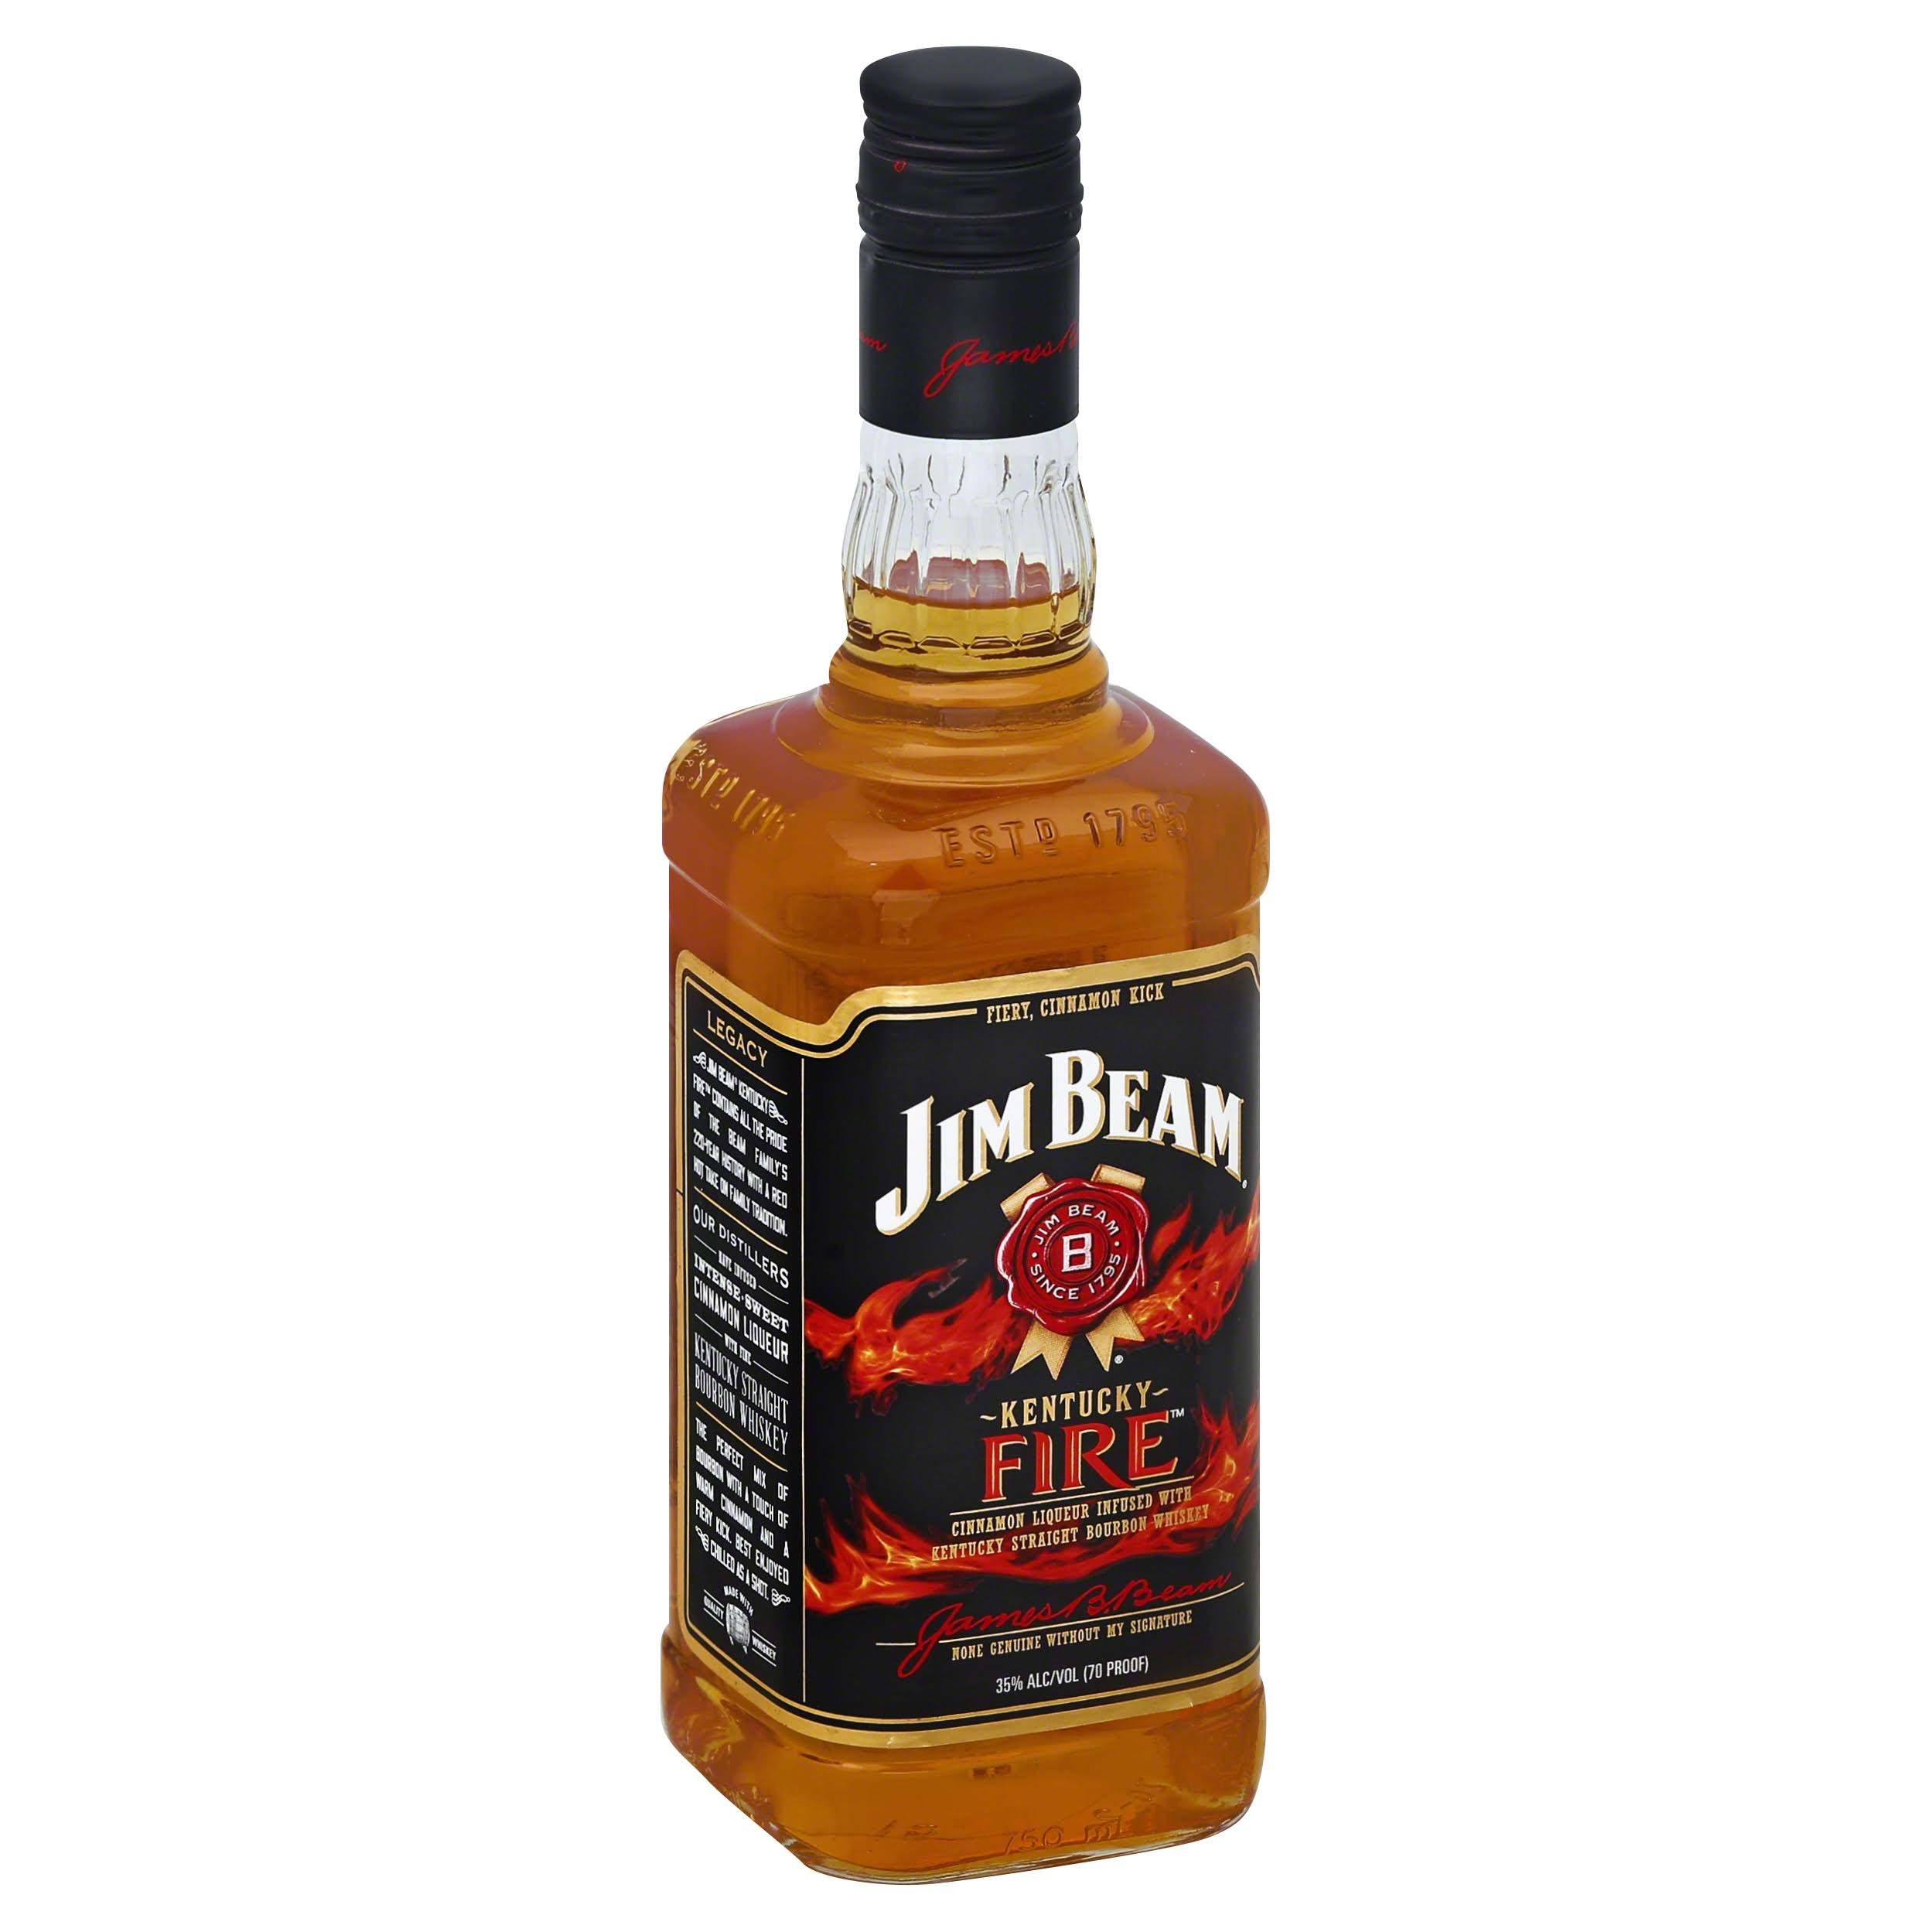 Jim Beam Kentucky Fire Bourbon - 750ml